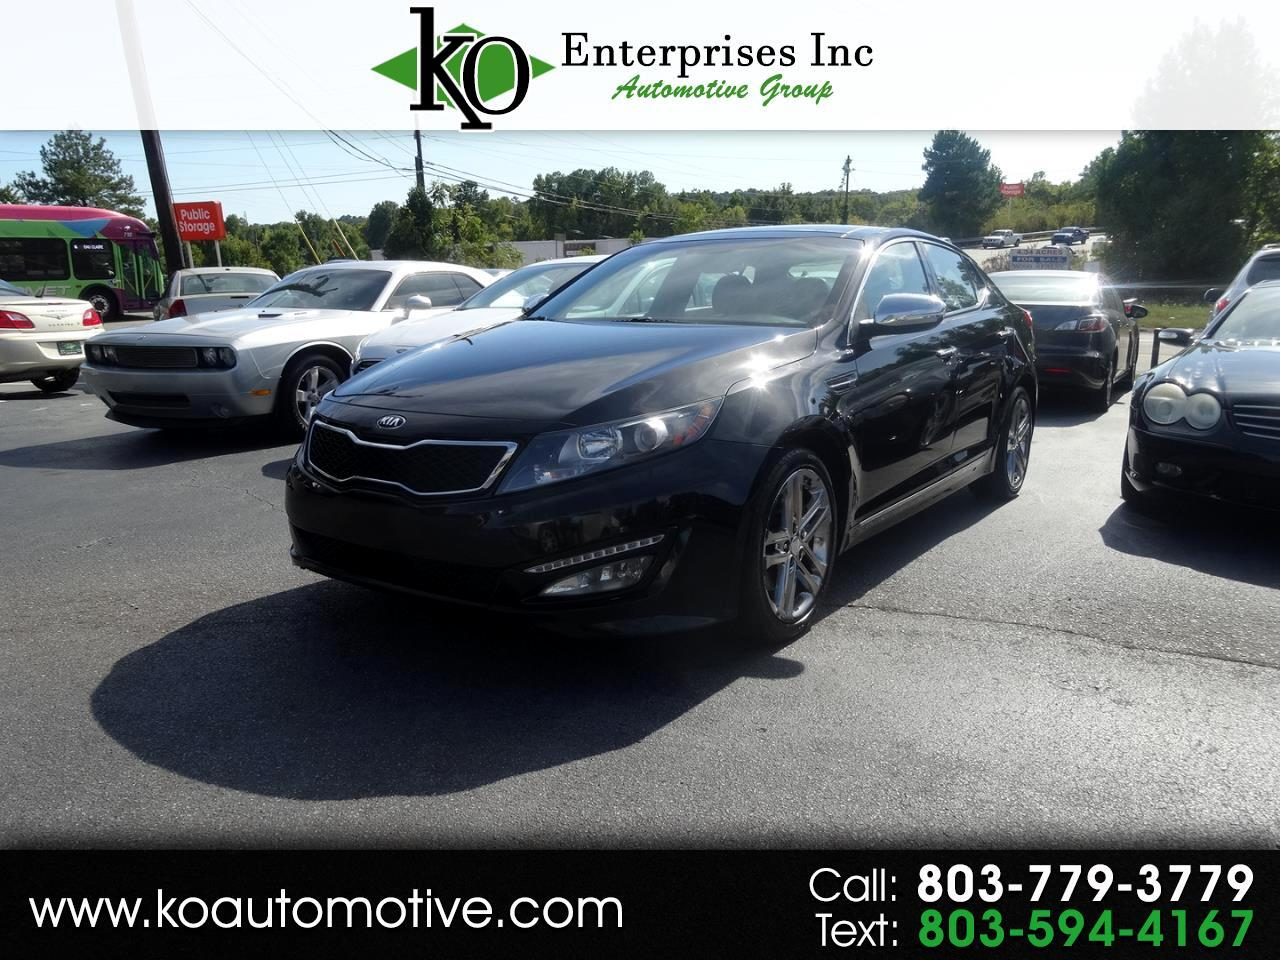 2013 Kia Optima 4dr Sdn SX w/Chrome Limited Pkg